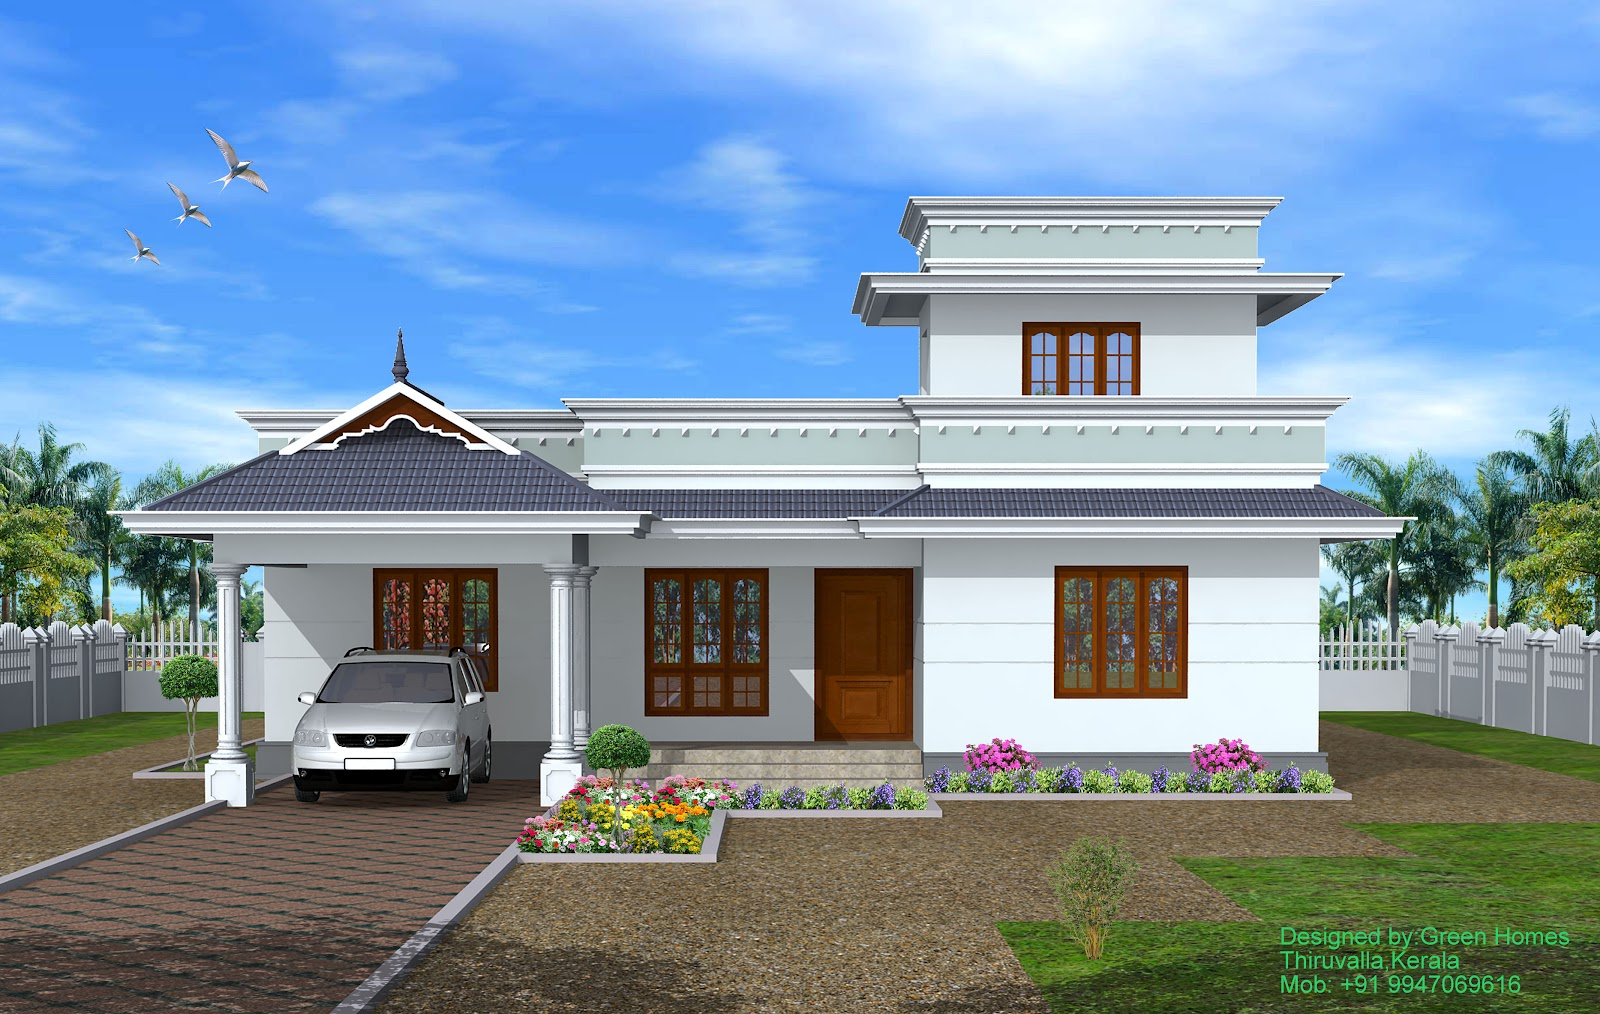 Green homes kerala 4 bhk single storey house 1950 for Single storey house plans